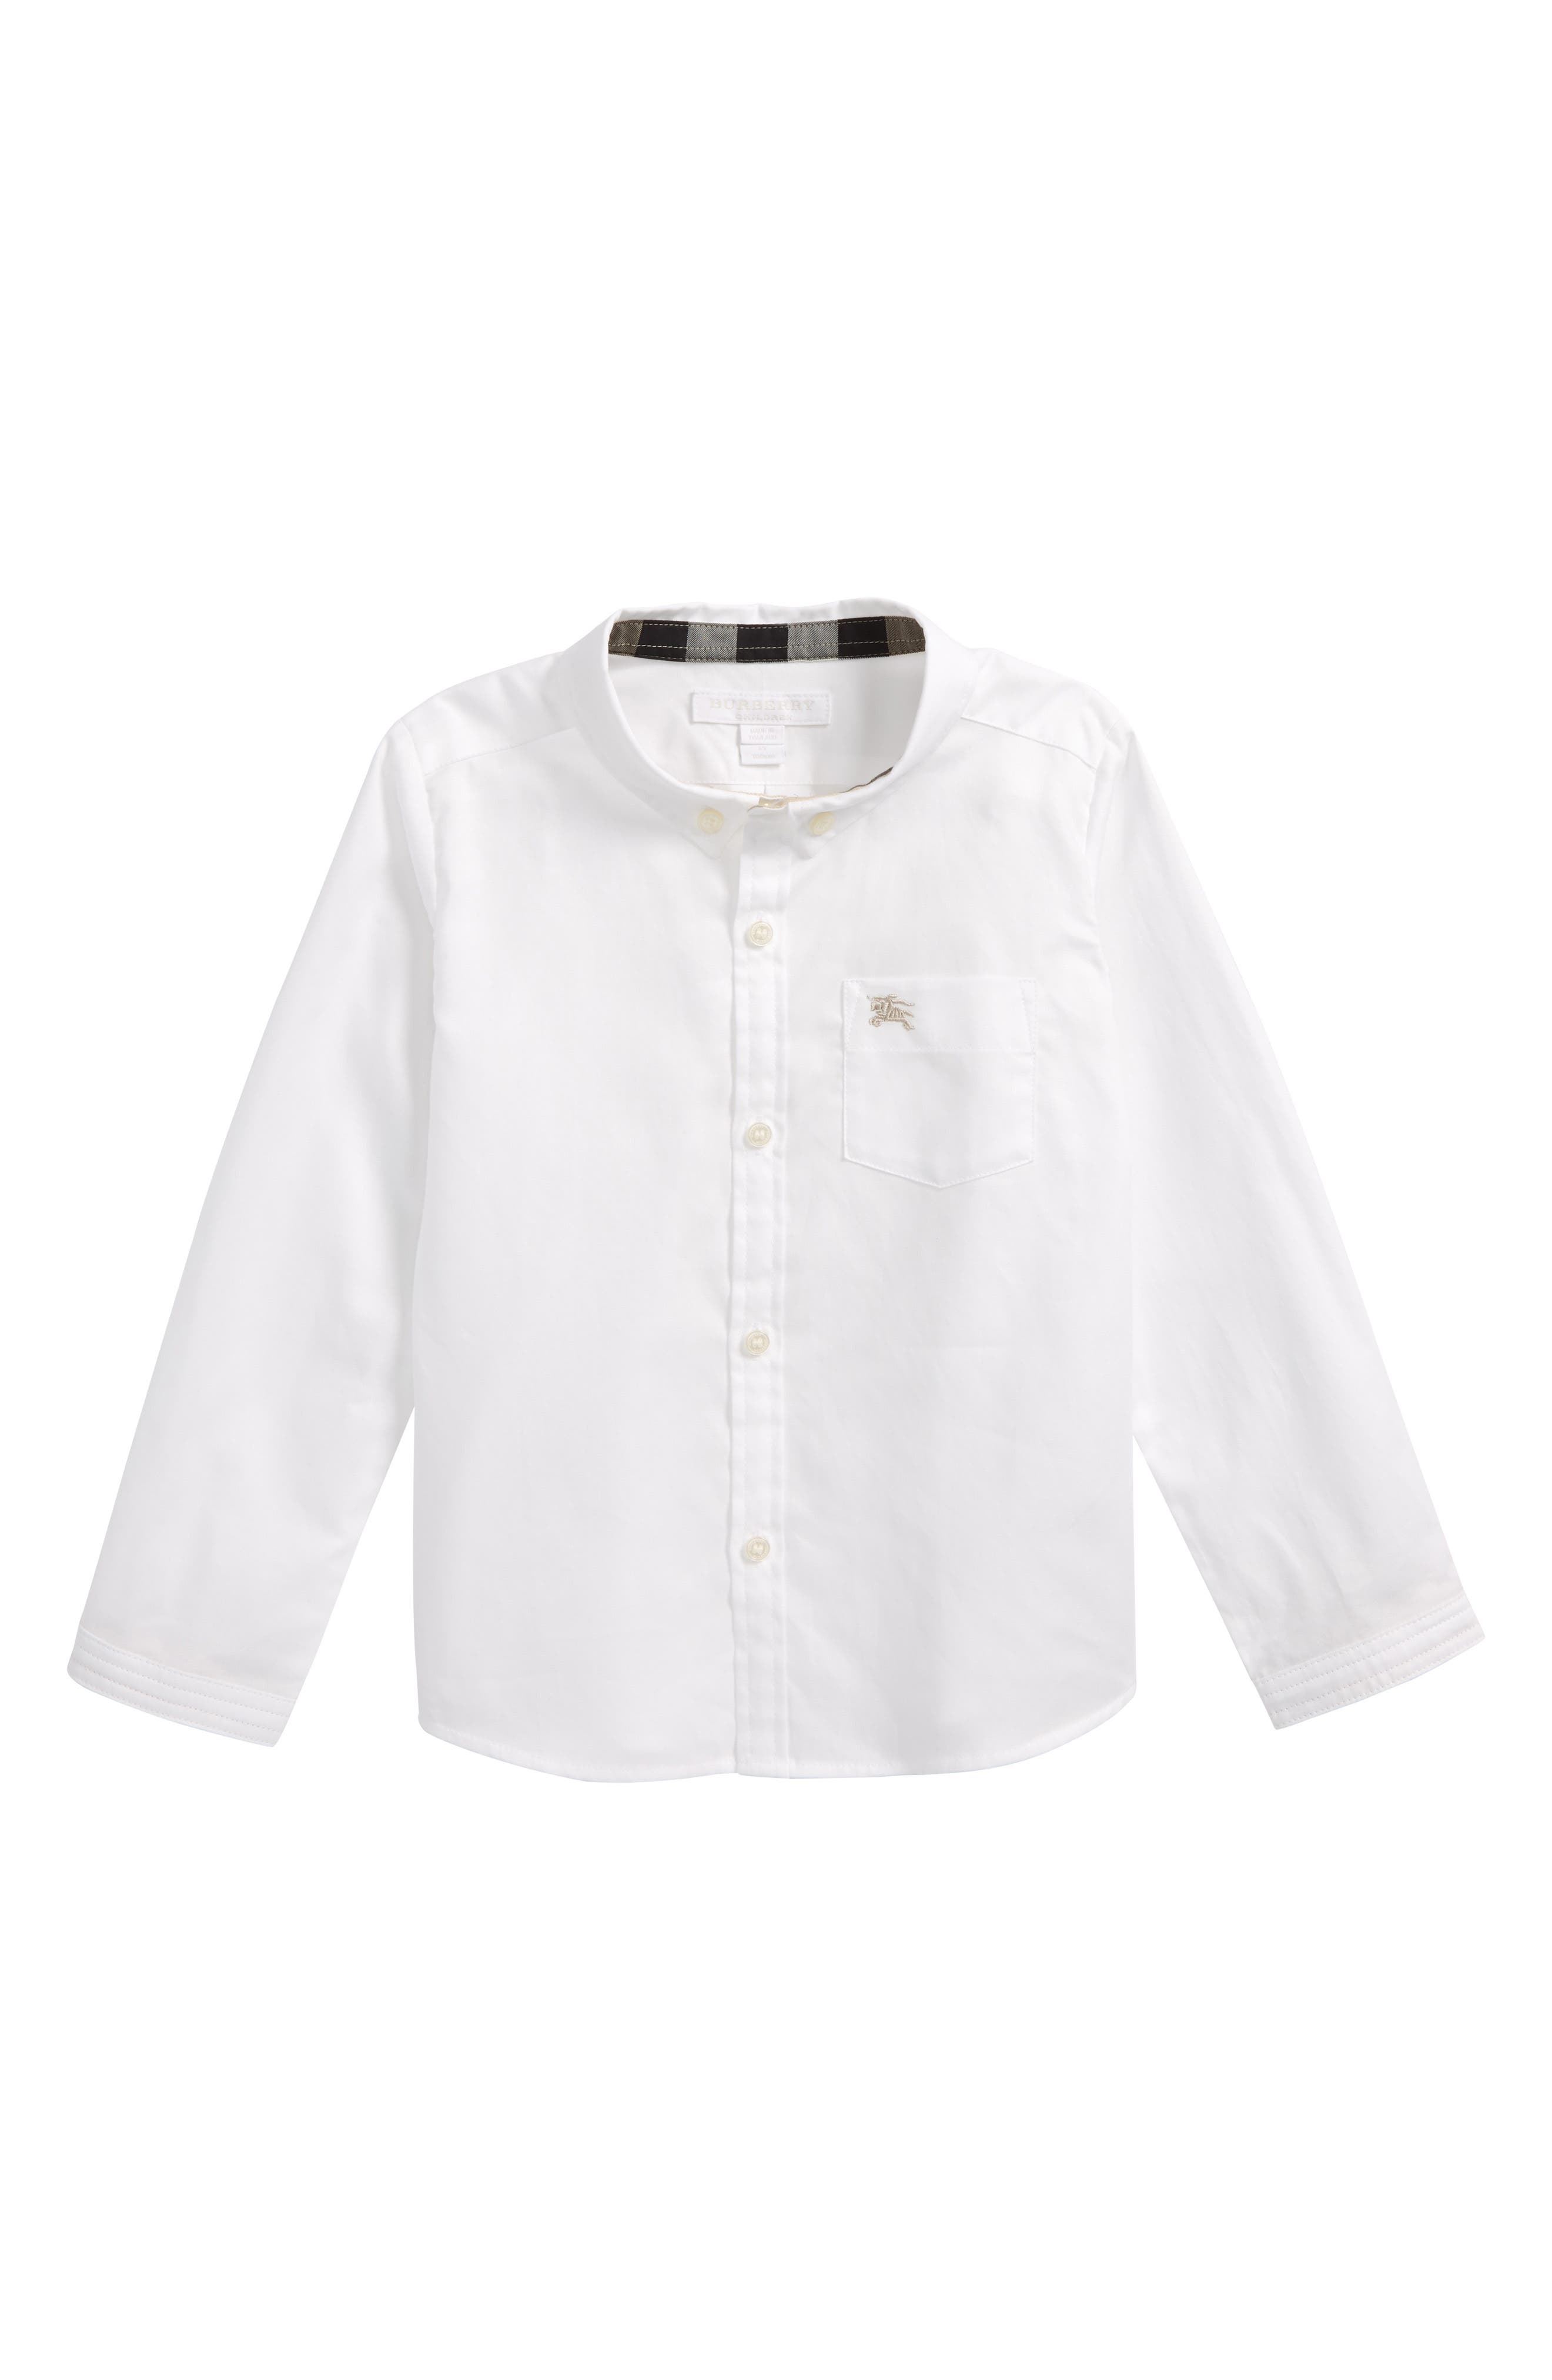 Fred Woven Shirt,                             Main thumbnail 1, color,                             White